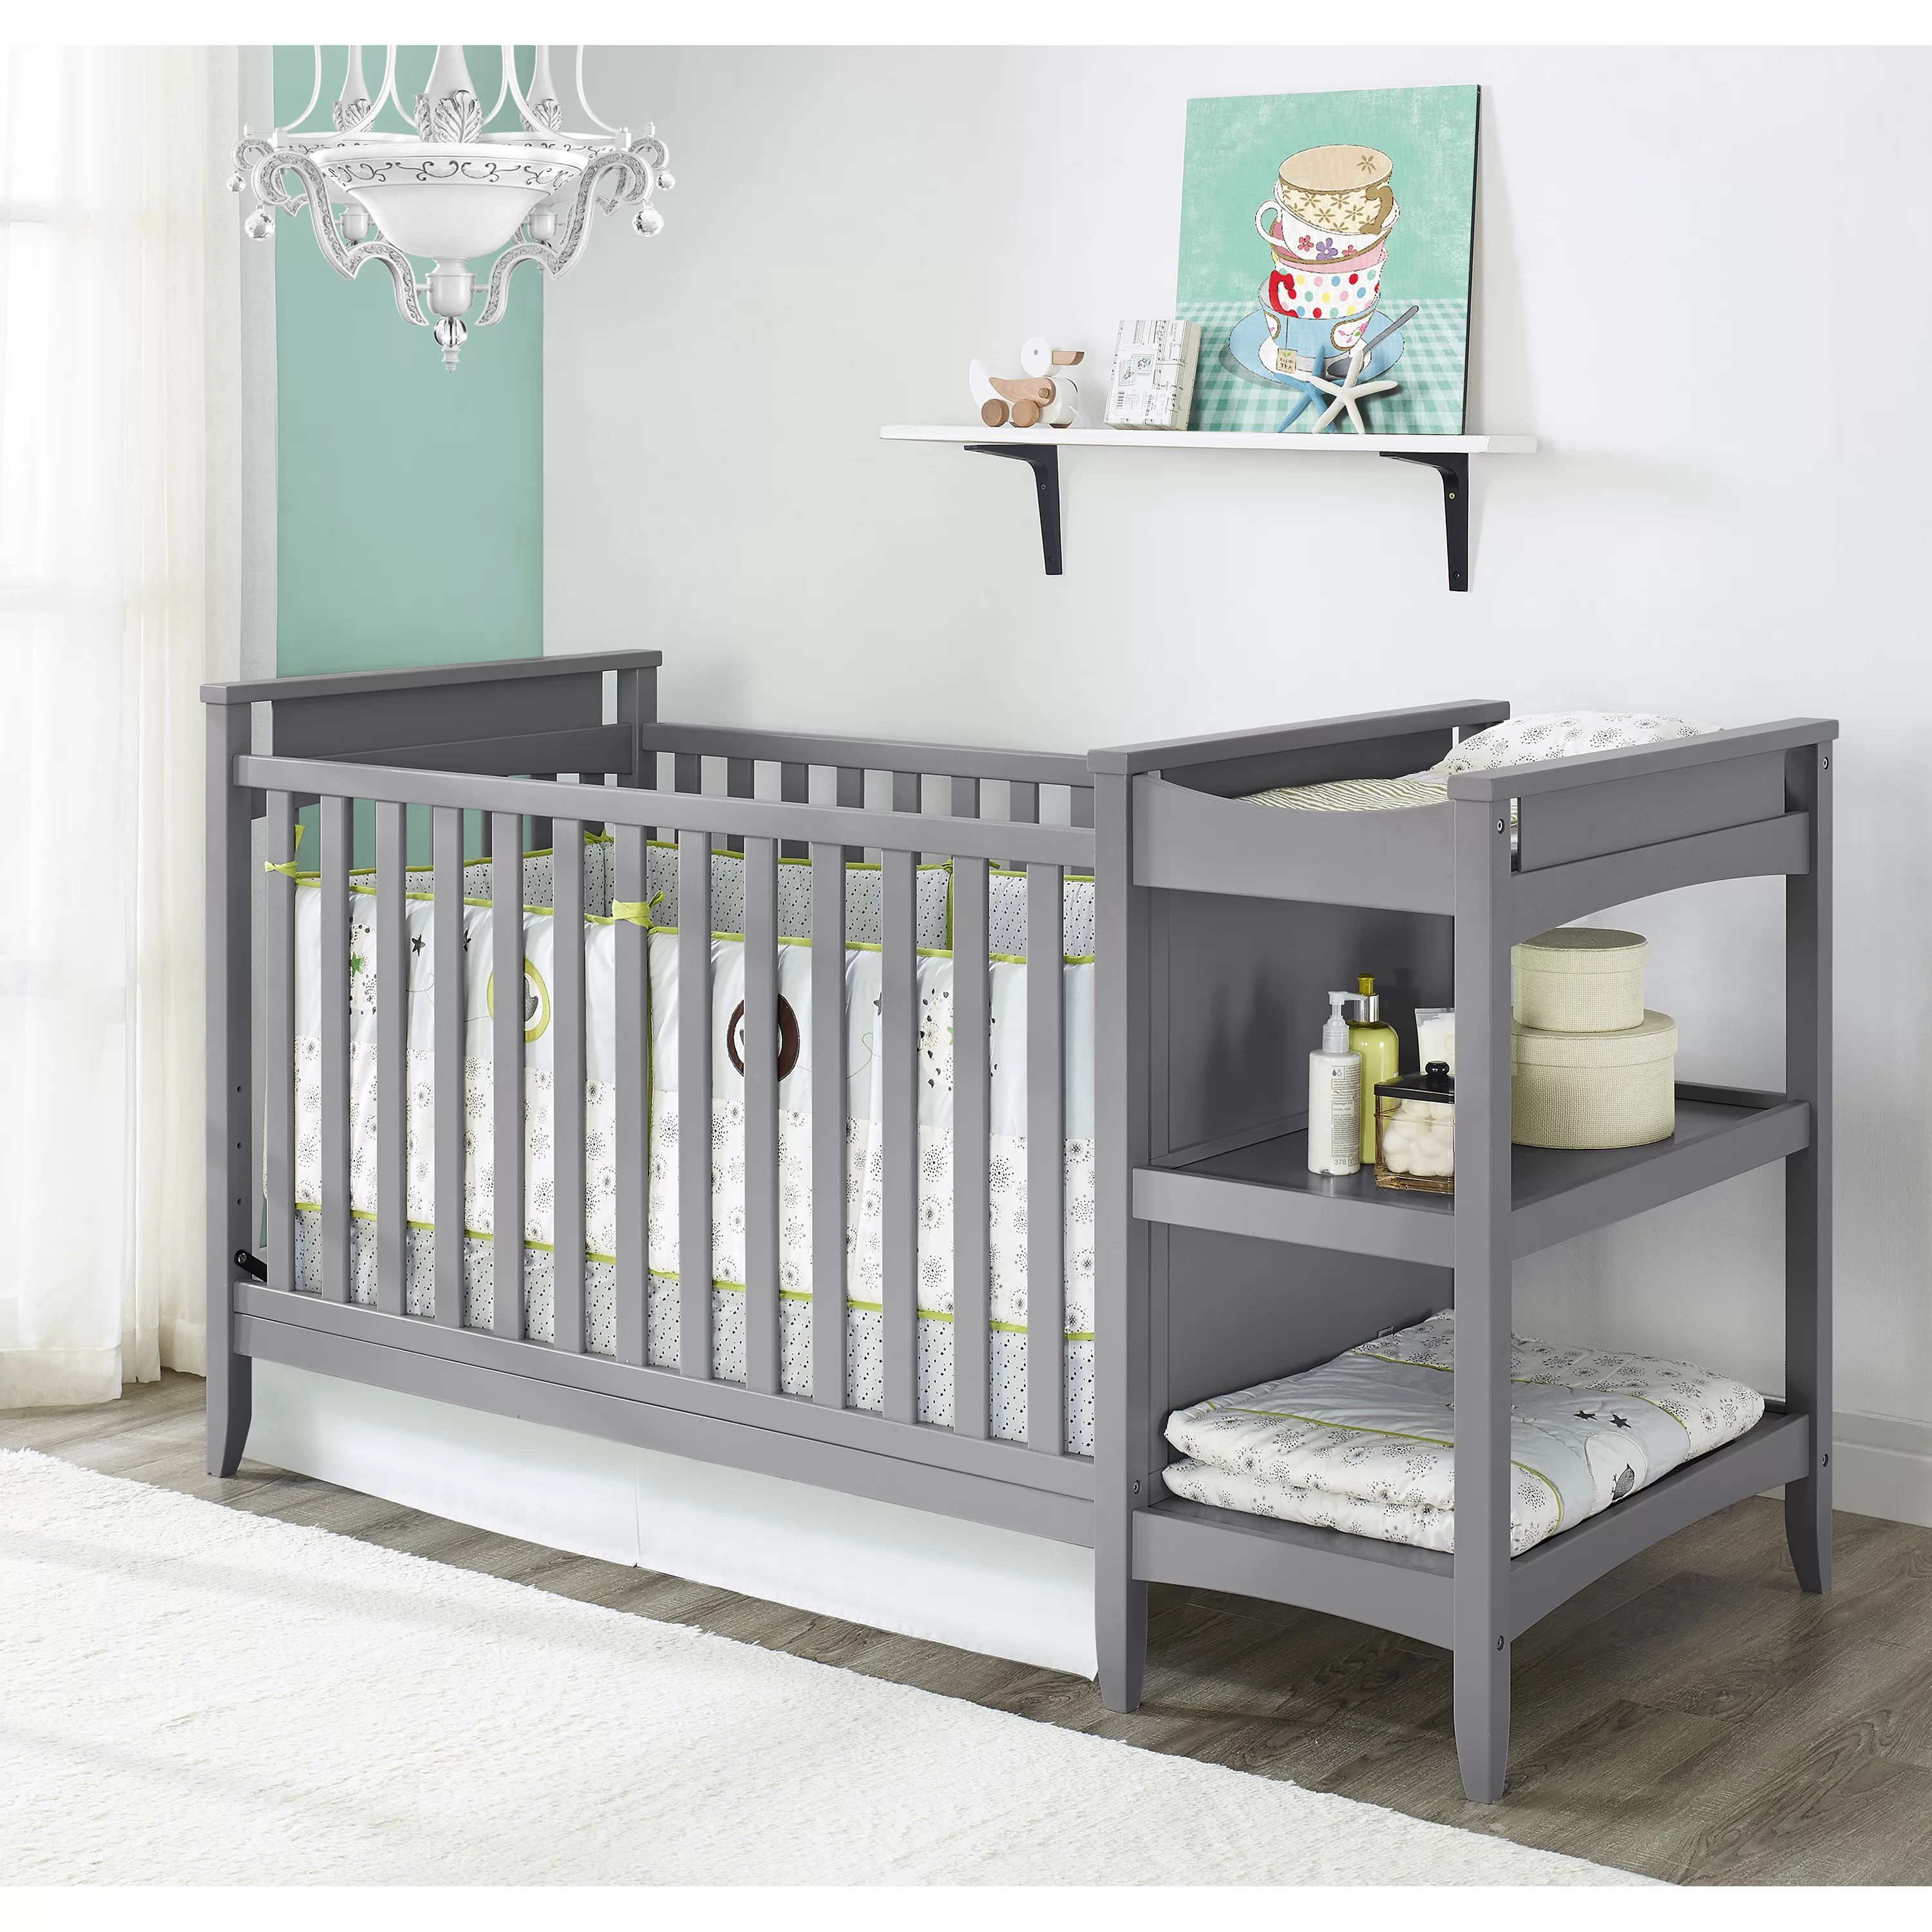 Baby relax emma 2 in 1 convertible crib with changing table